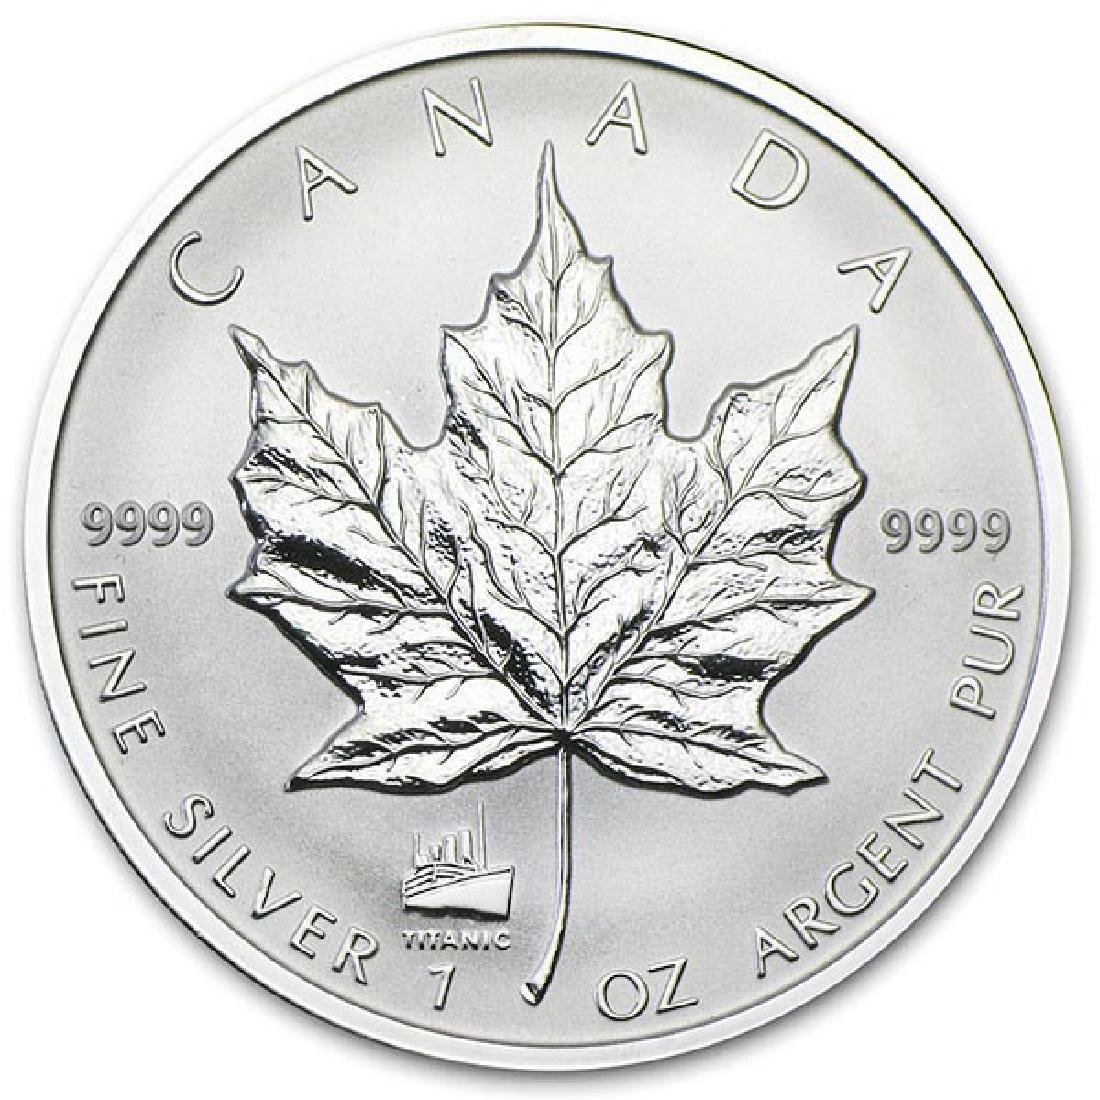 2012 Canada 1 oz. Silver Maple Leaf Reverse Proof Titan